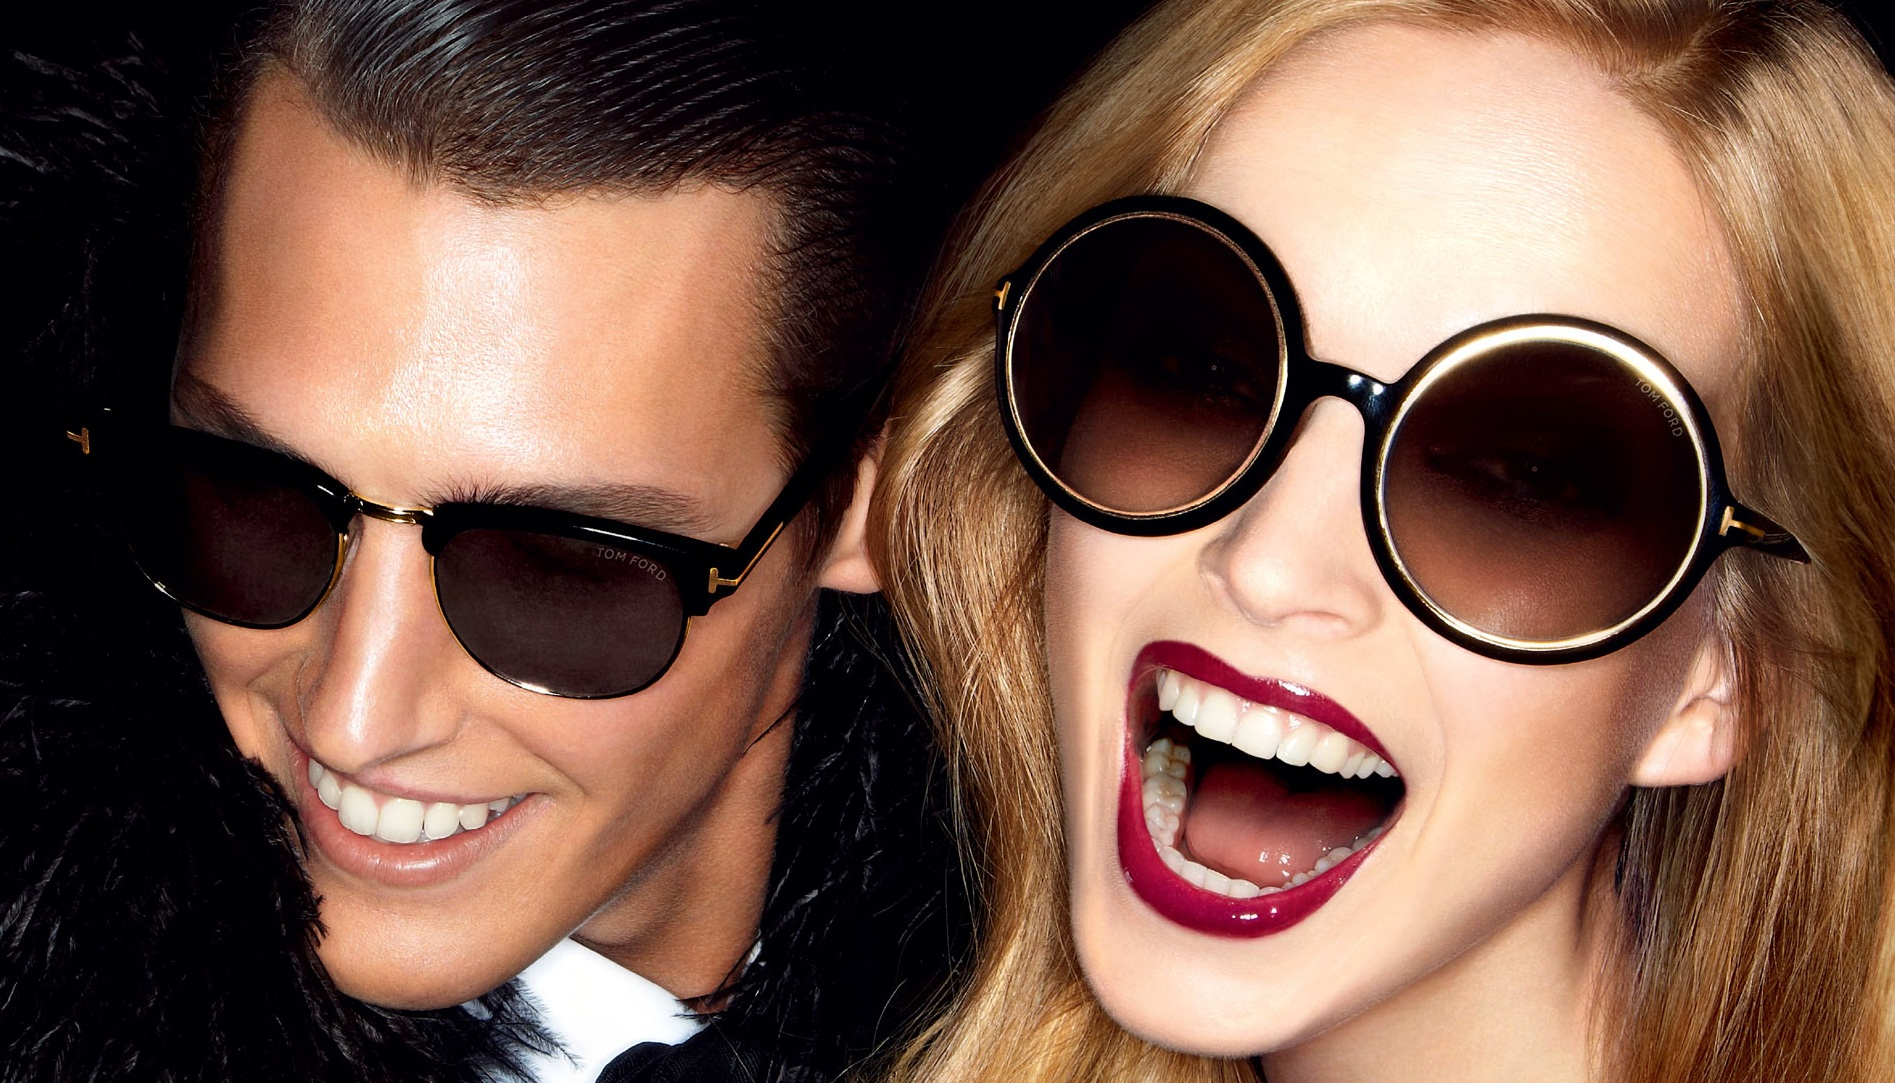 Lux Eyewear Melrose - Sunglasses & Eyewear Los Angeles